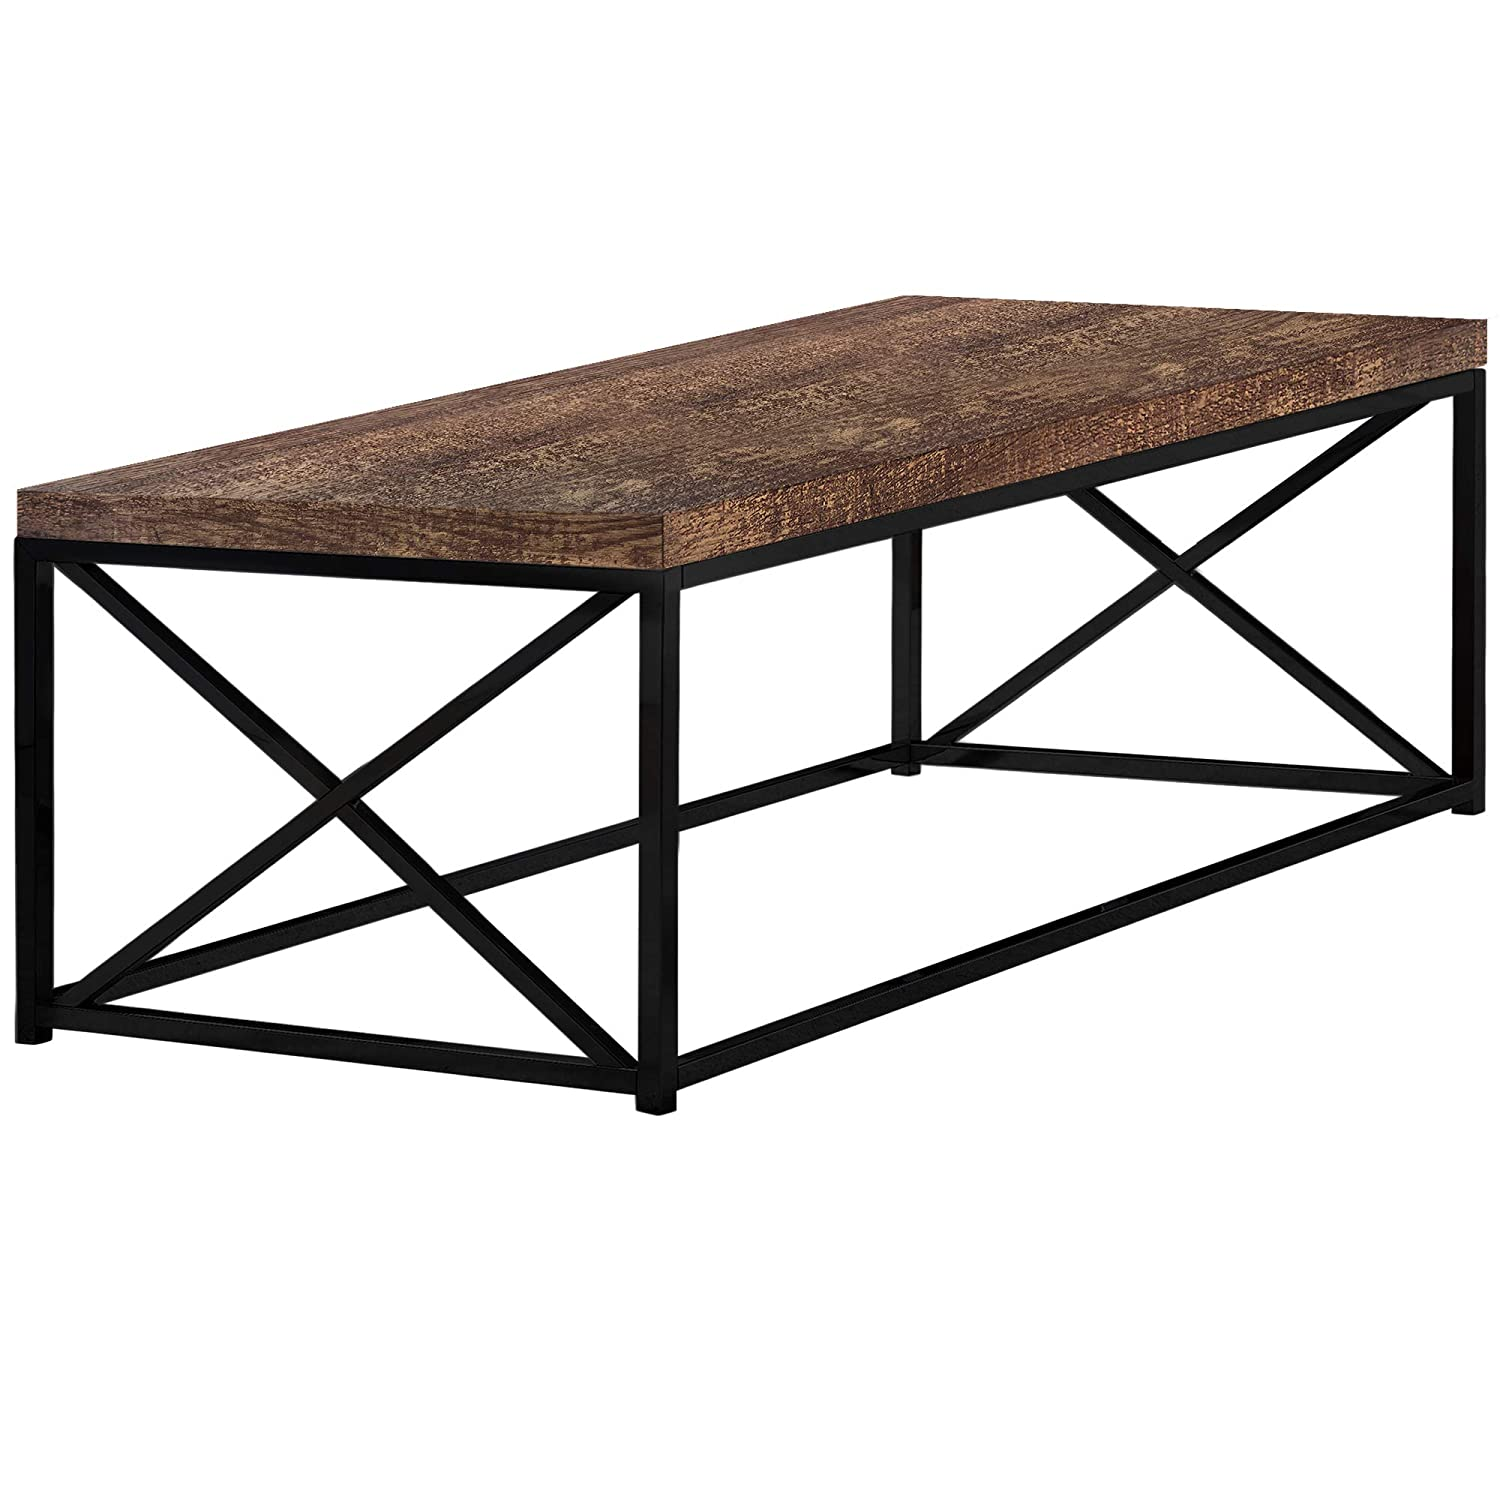 Monarch Specialties I 3416 Brown Reclaimed Wood-Look Black Metal Coffee Table,